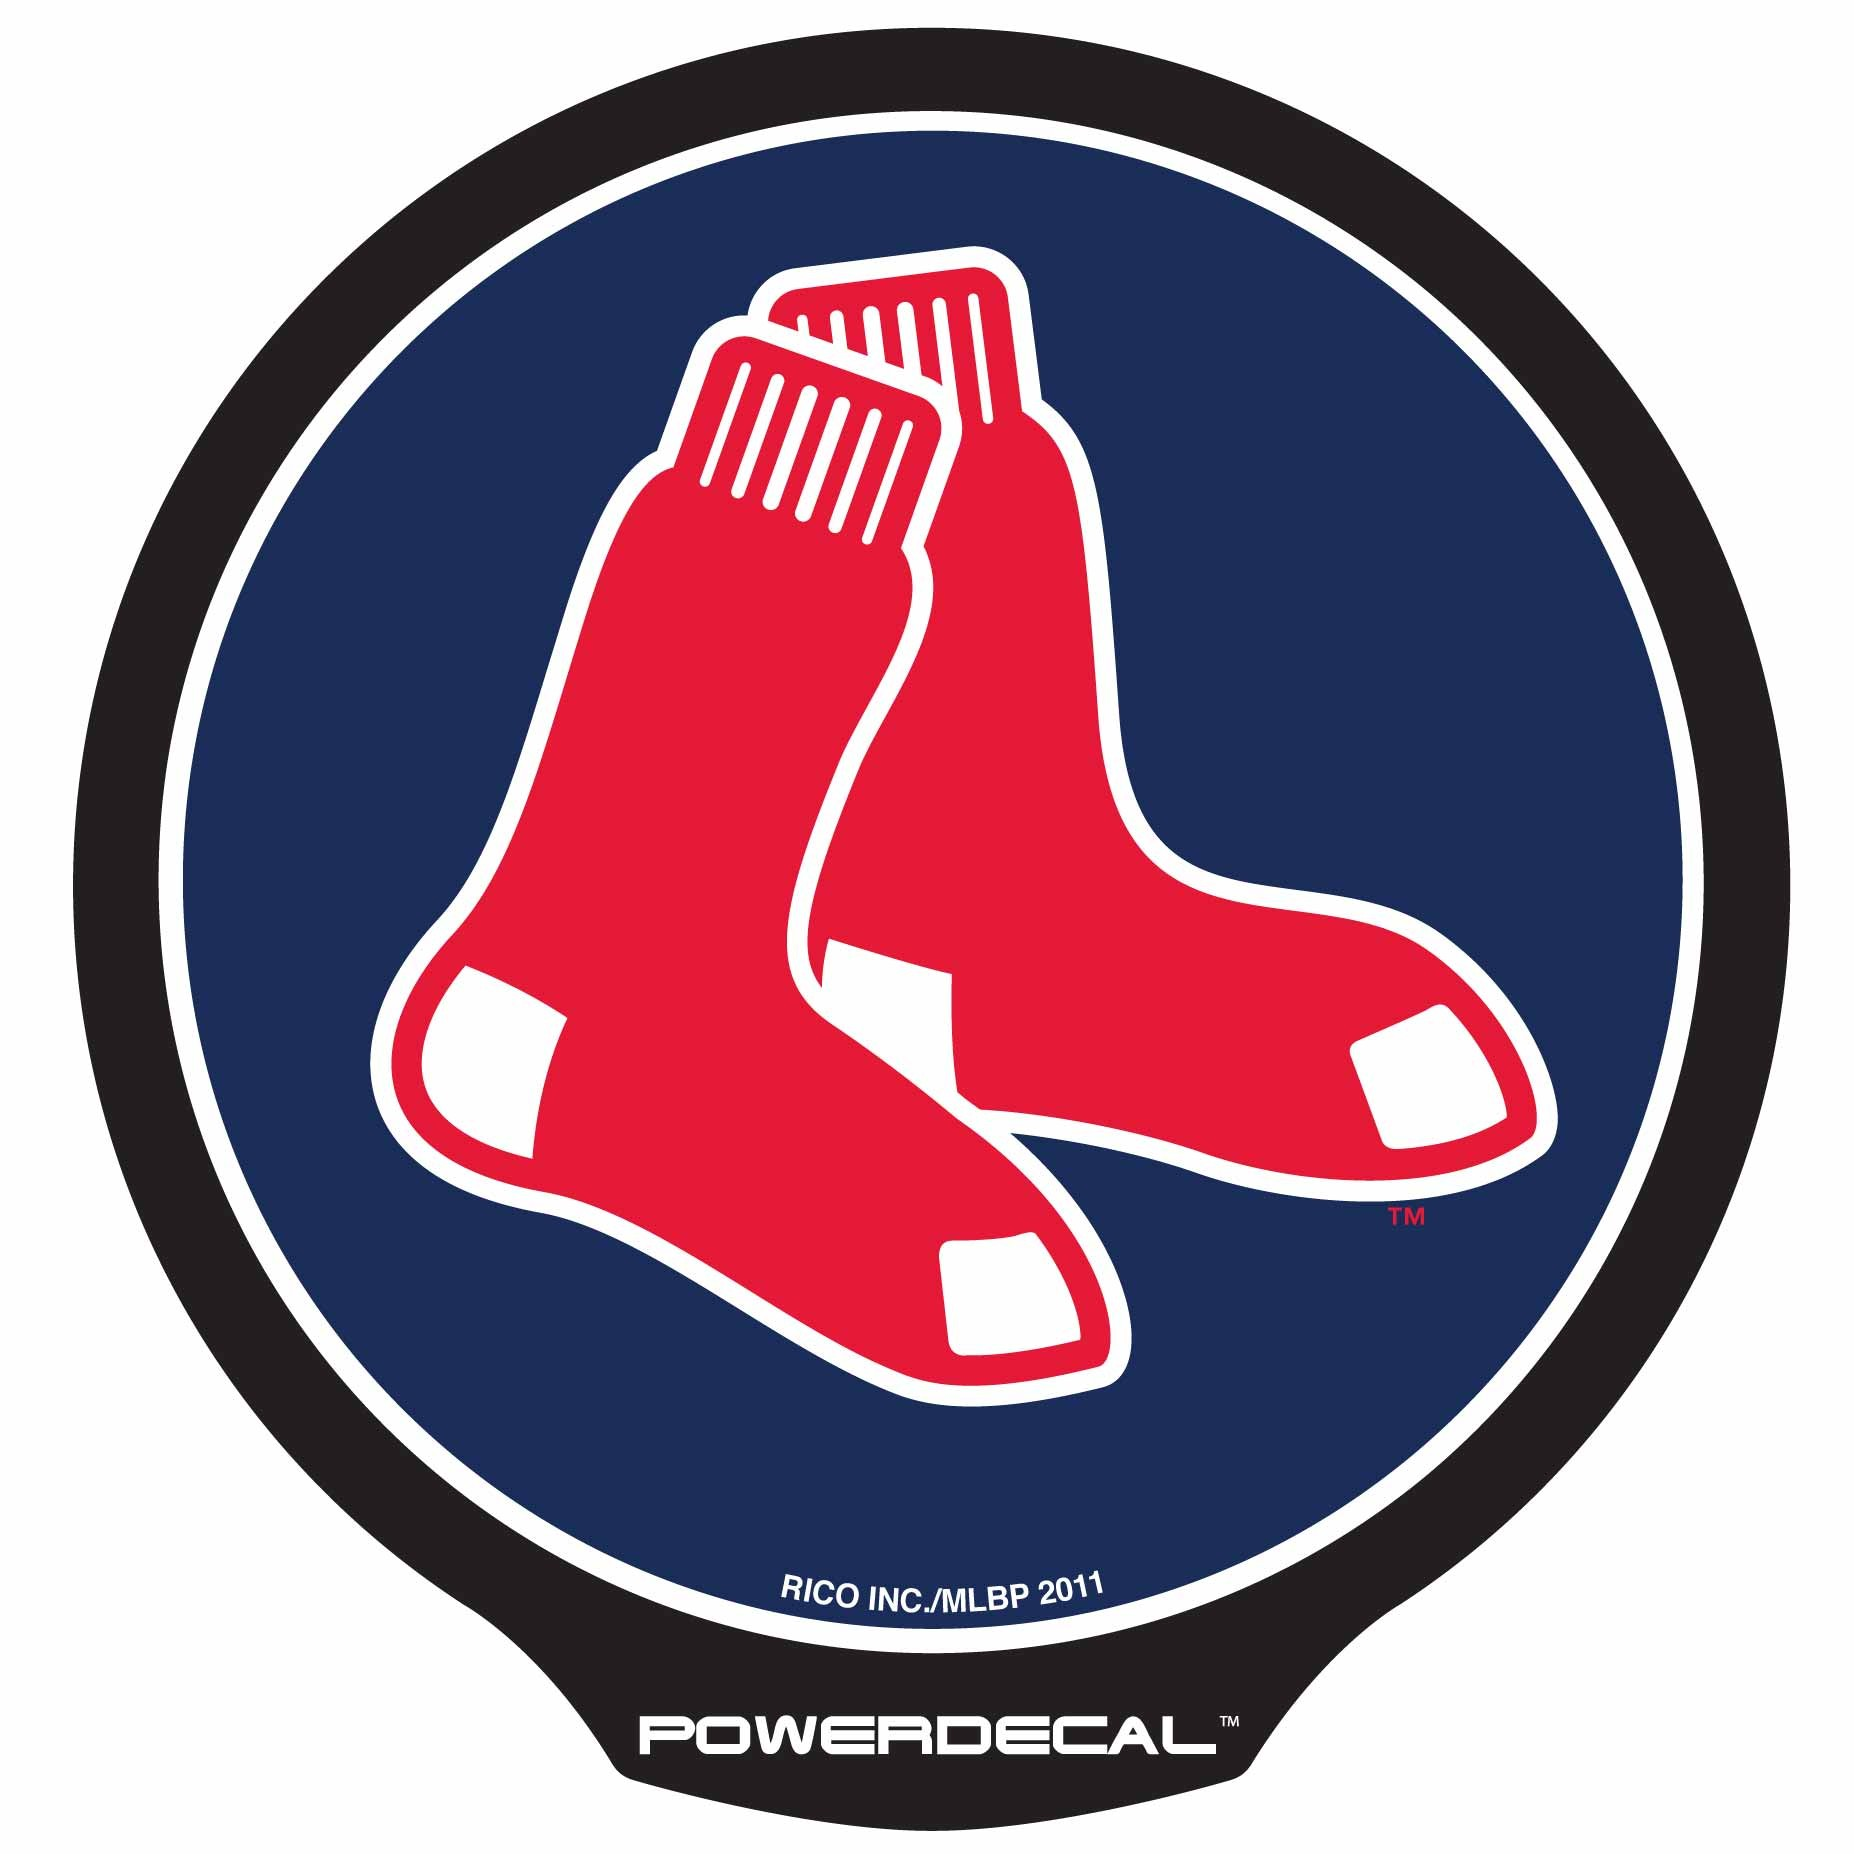 Power Decal Lighted - Boston Red Sox-Power Decal Lighted - Boston Red Sox-6